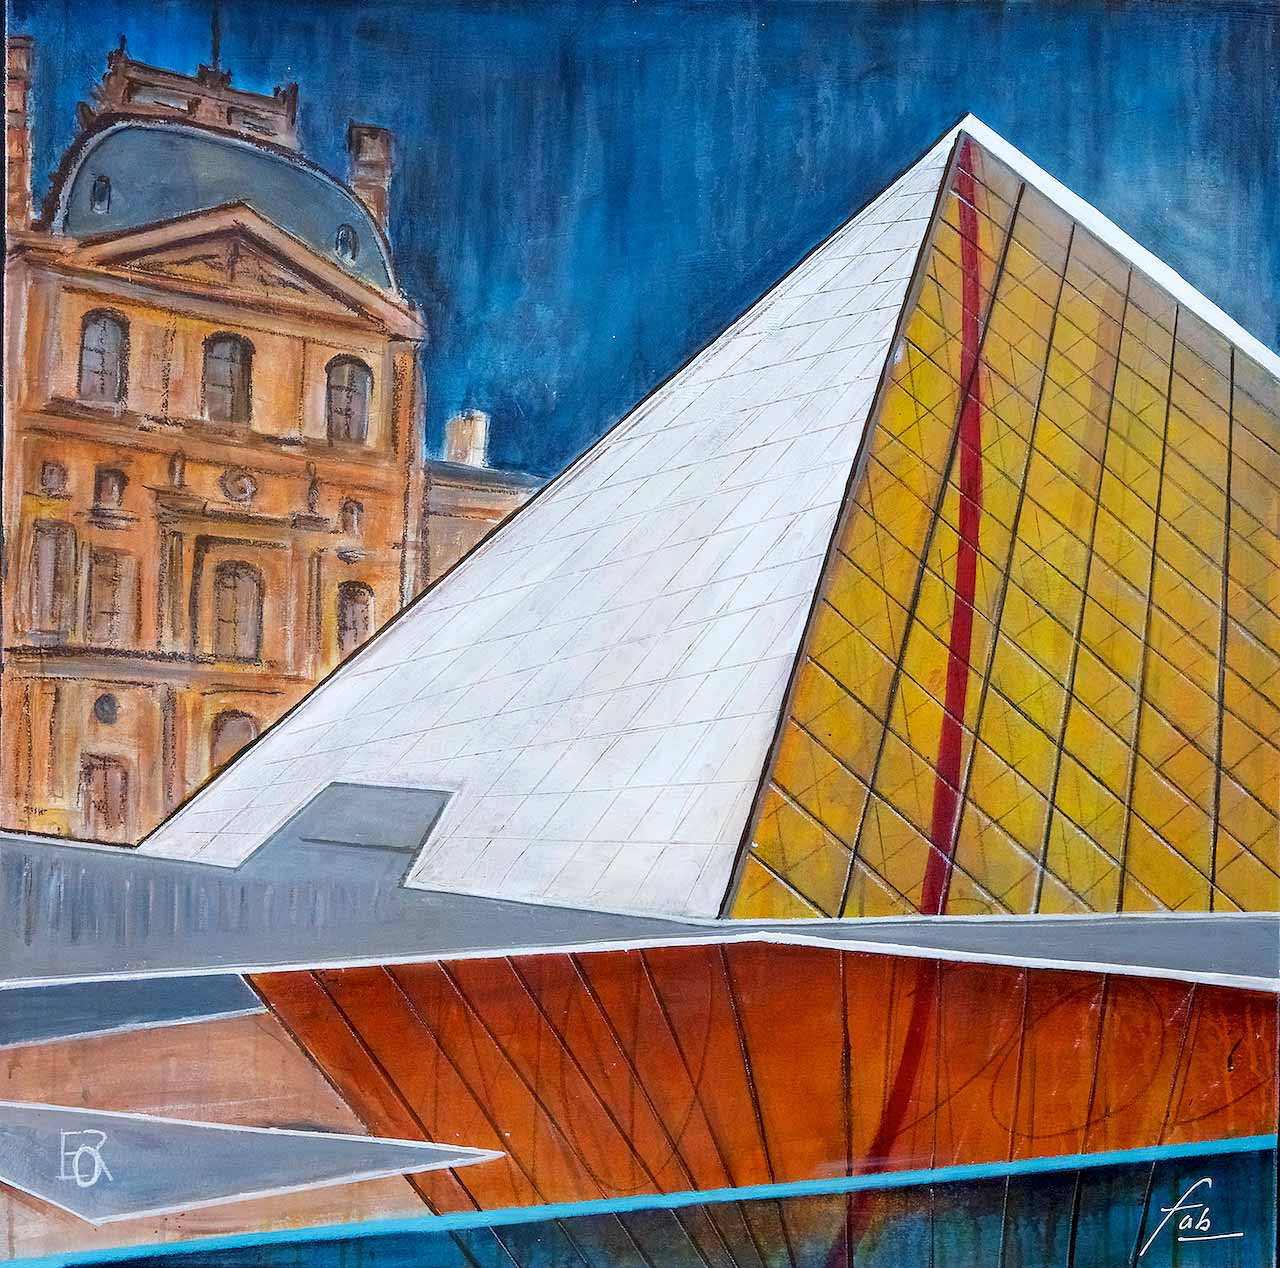 "<b>""Louvre""</b> <span style= ""font-size:14px"">(2018)</span> <br><p style = ""font-size:14px"">Acrylic on canvas<br>39 x 39 in; 99 x 99 cm</p>"